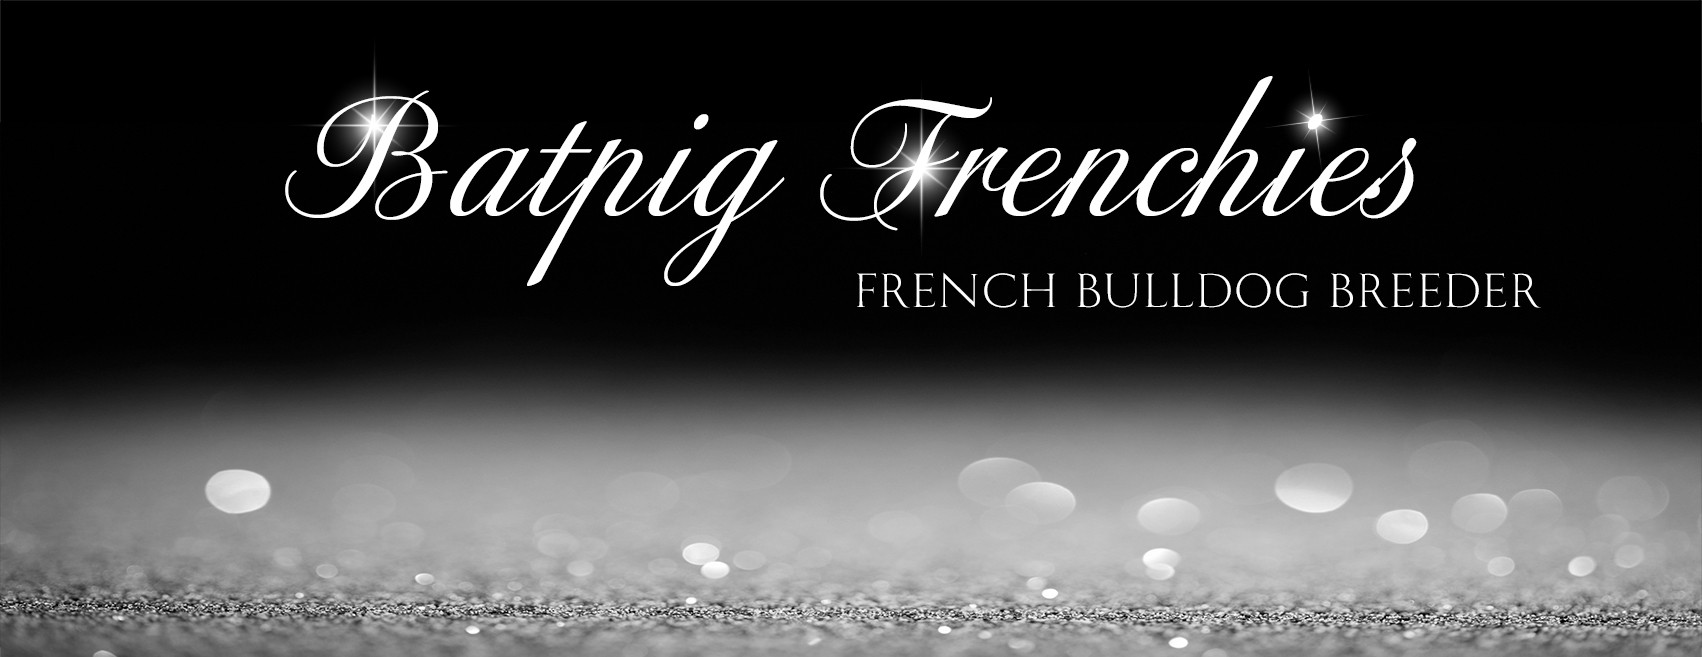 BatPig Frenchies is a breeder looking for dramatic and sparkly design for the Facebook page